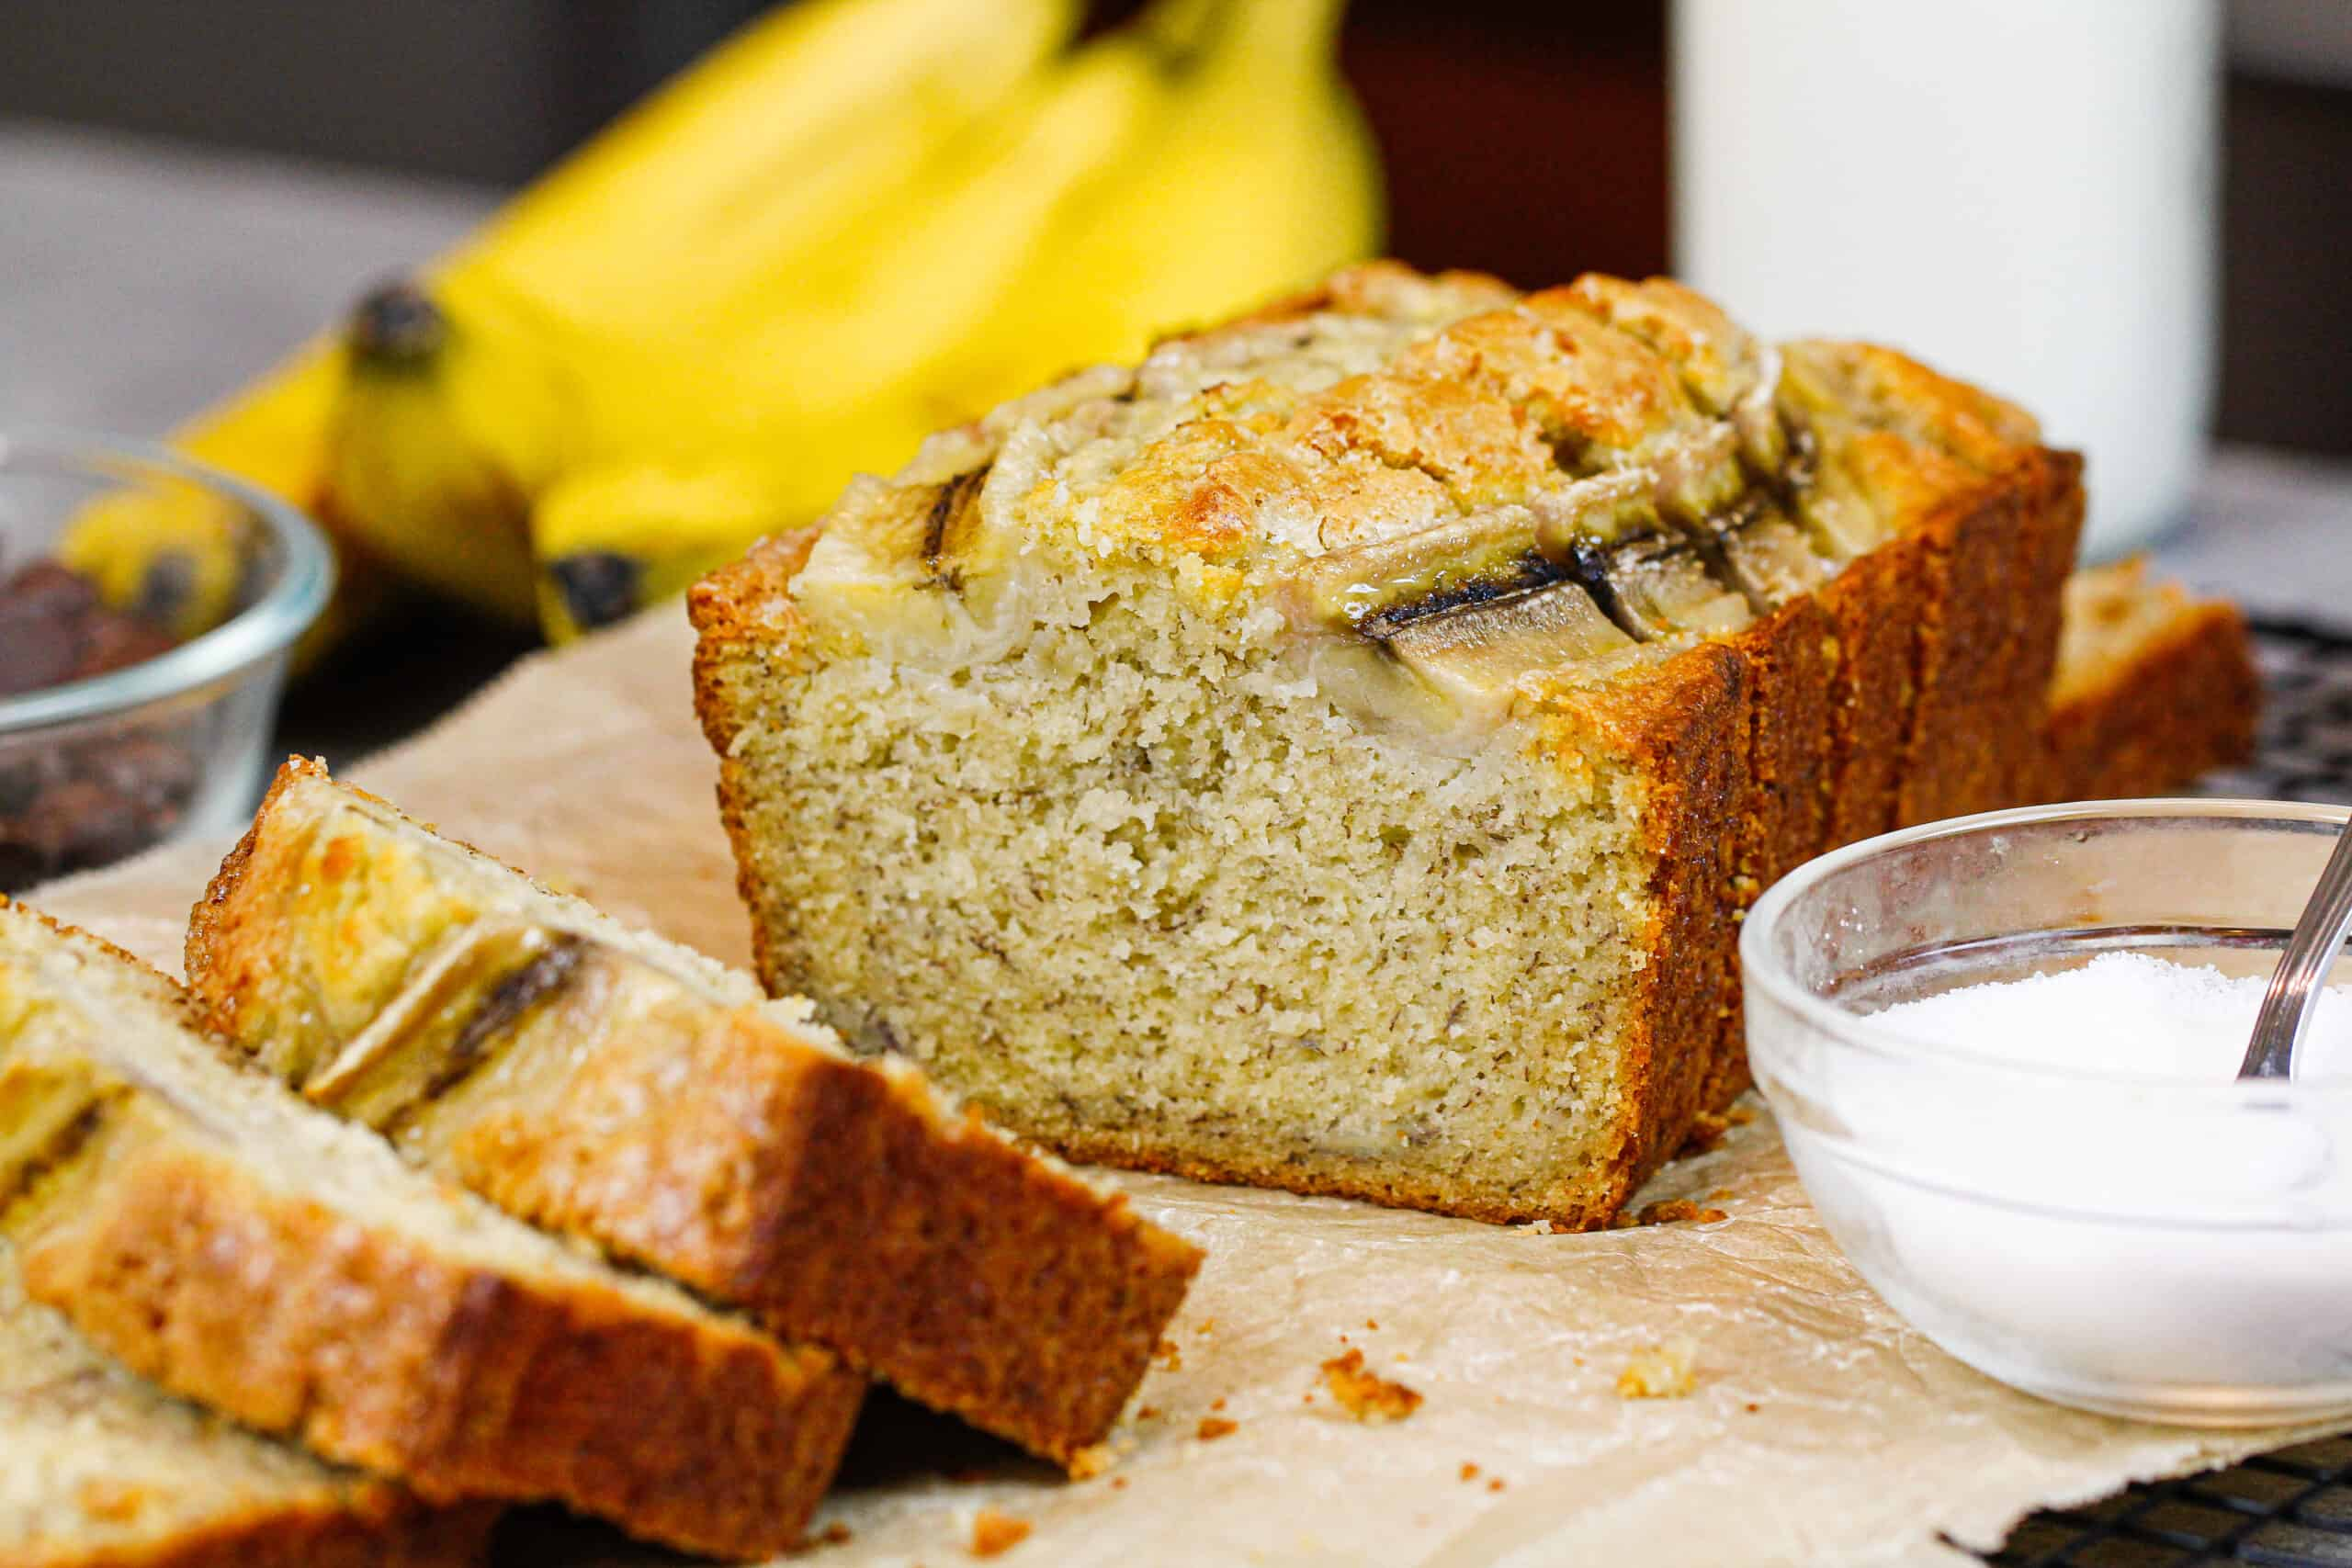 image of pretty banana bread loaf slices and ready to be eaten